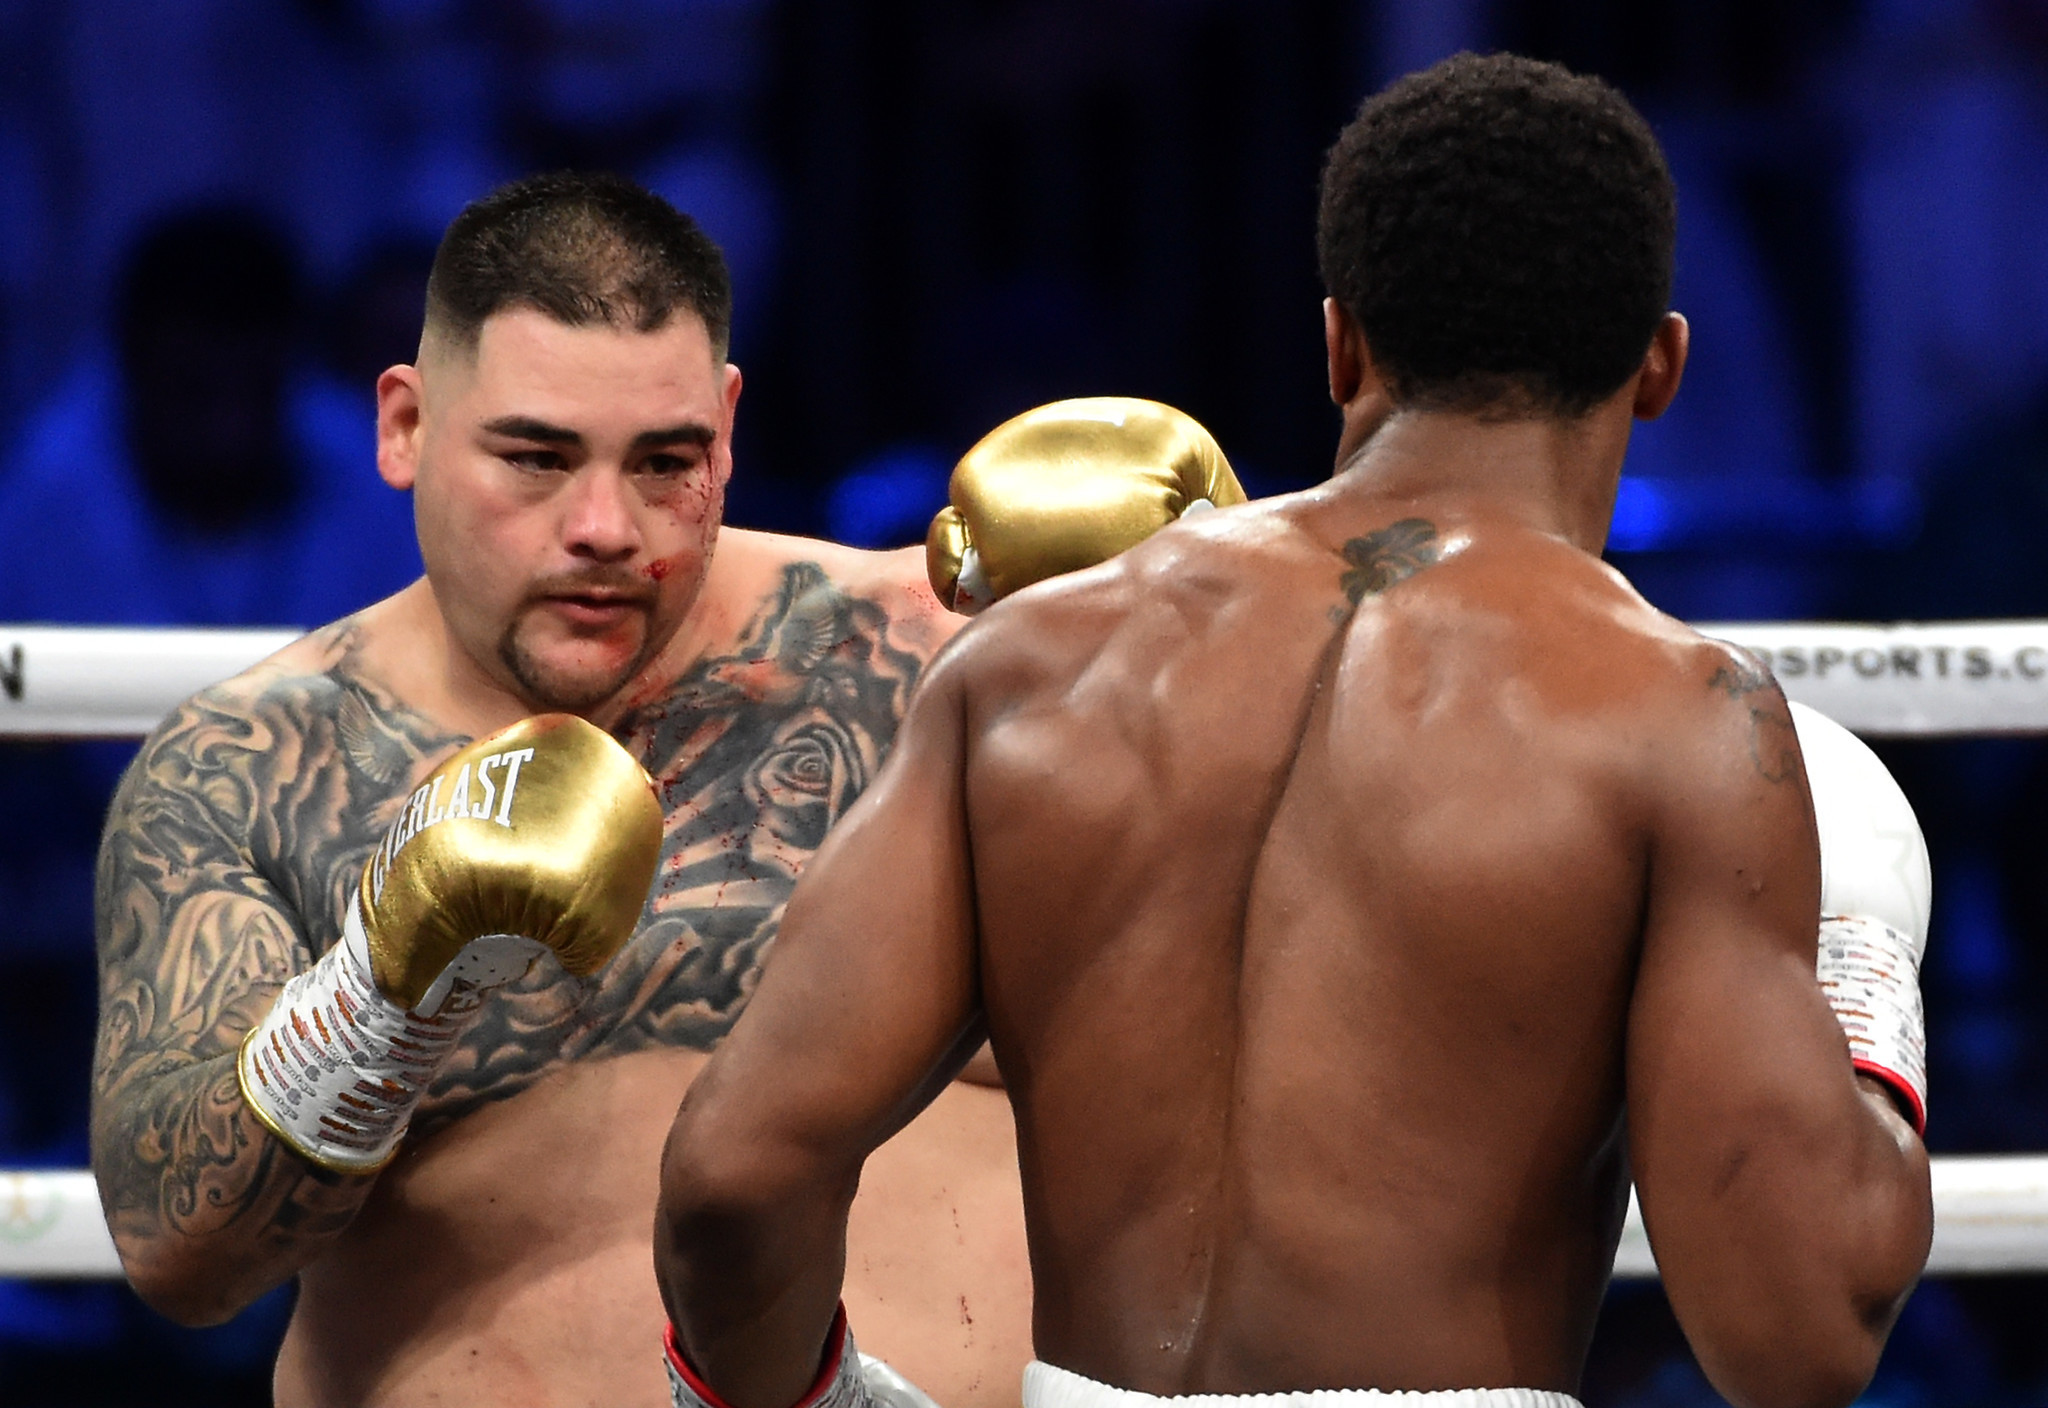 Andy Ruiz on why he lost fight: 'Celebrating, drinking a few more Coronas than I should have'